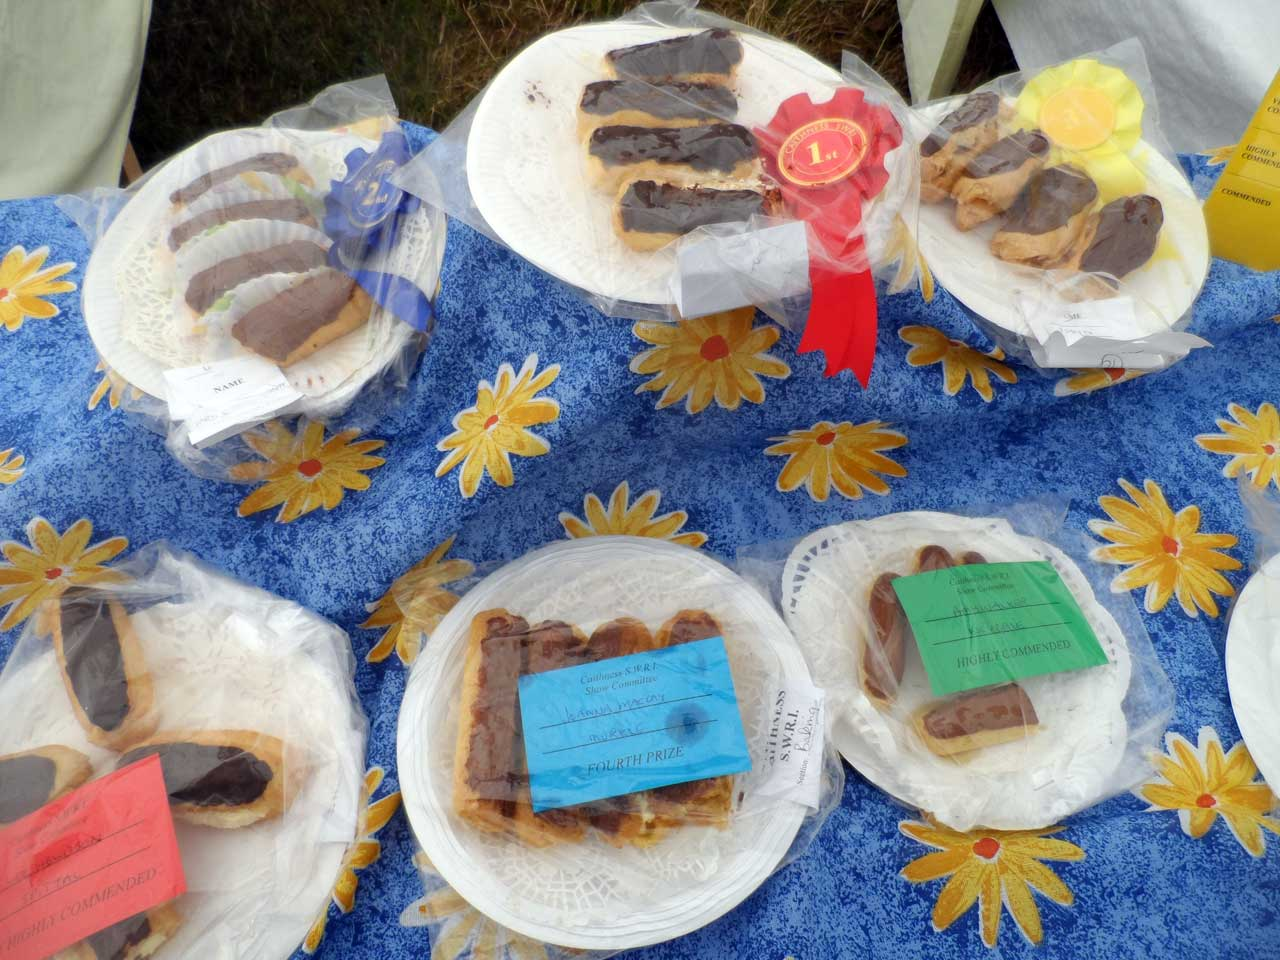 Photo: Caithness County Show 2014 - Friday Evening Preview